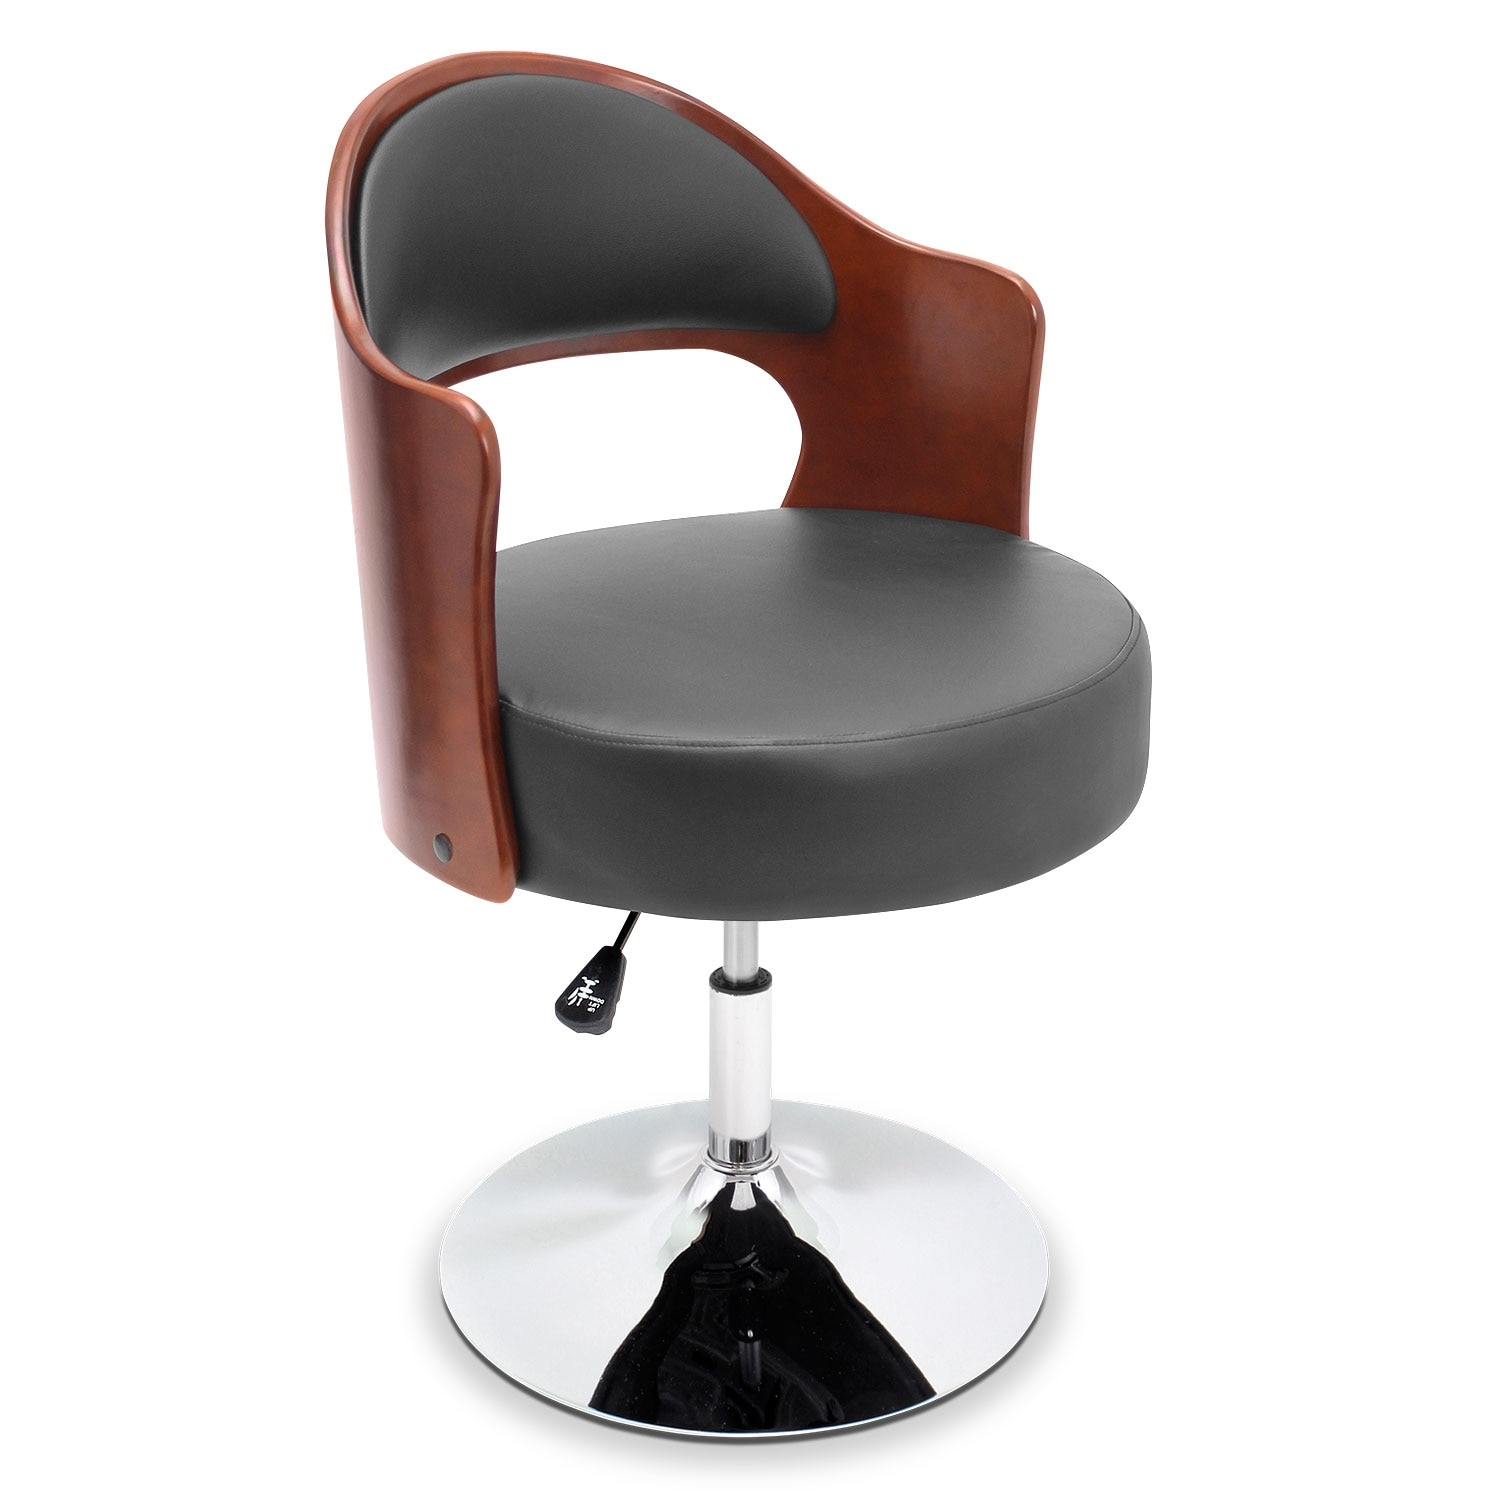 Living Room Furniture - Park Accent Chair - Black